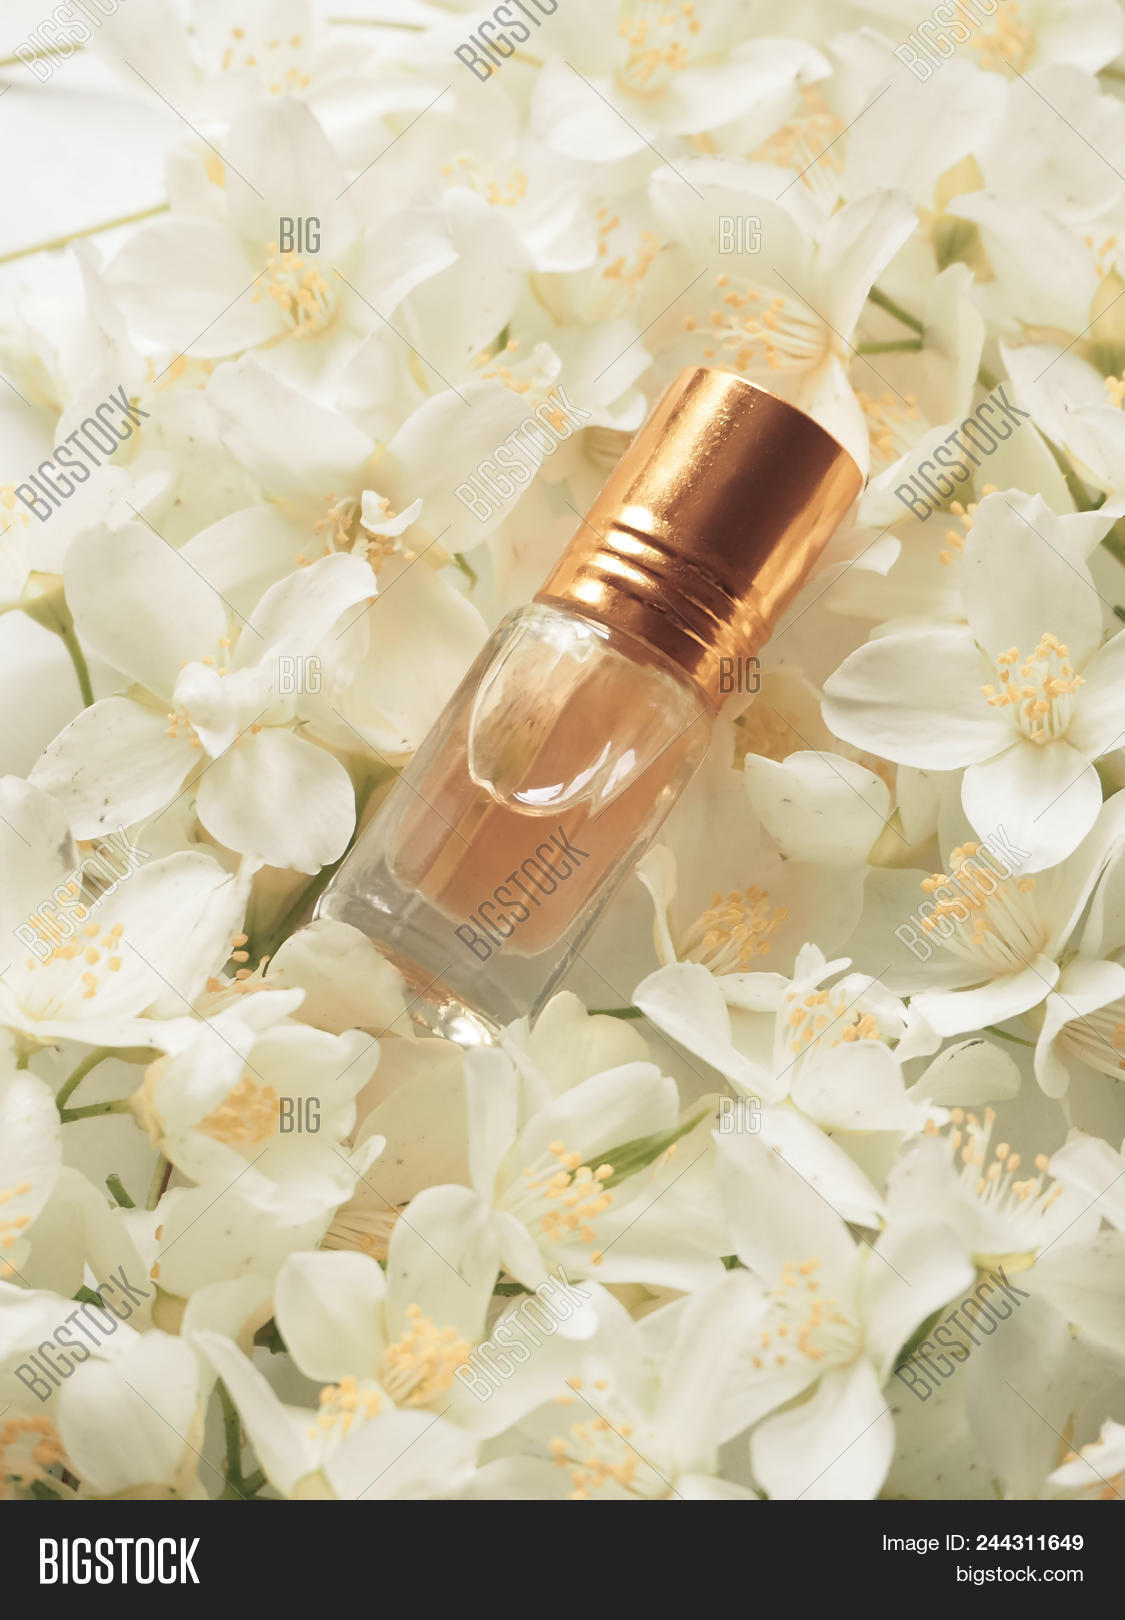 Indian jasmine attar image photo free trial bigstock indian jasmine attar oil natural jasmine flower oil for relaxation and bliss izmirmasajfo